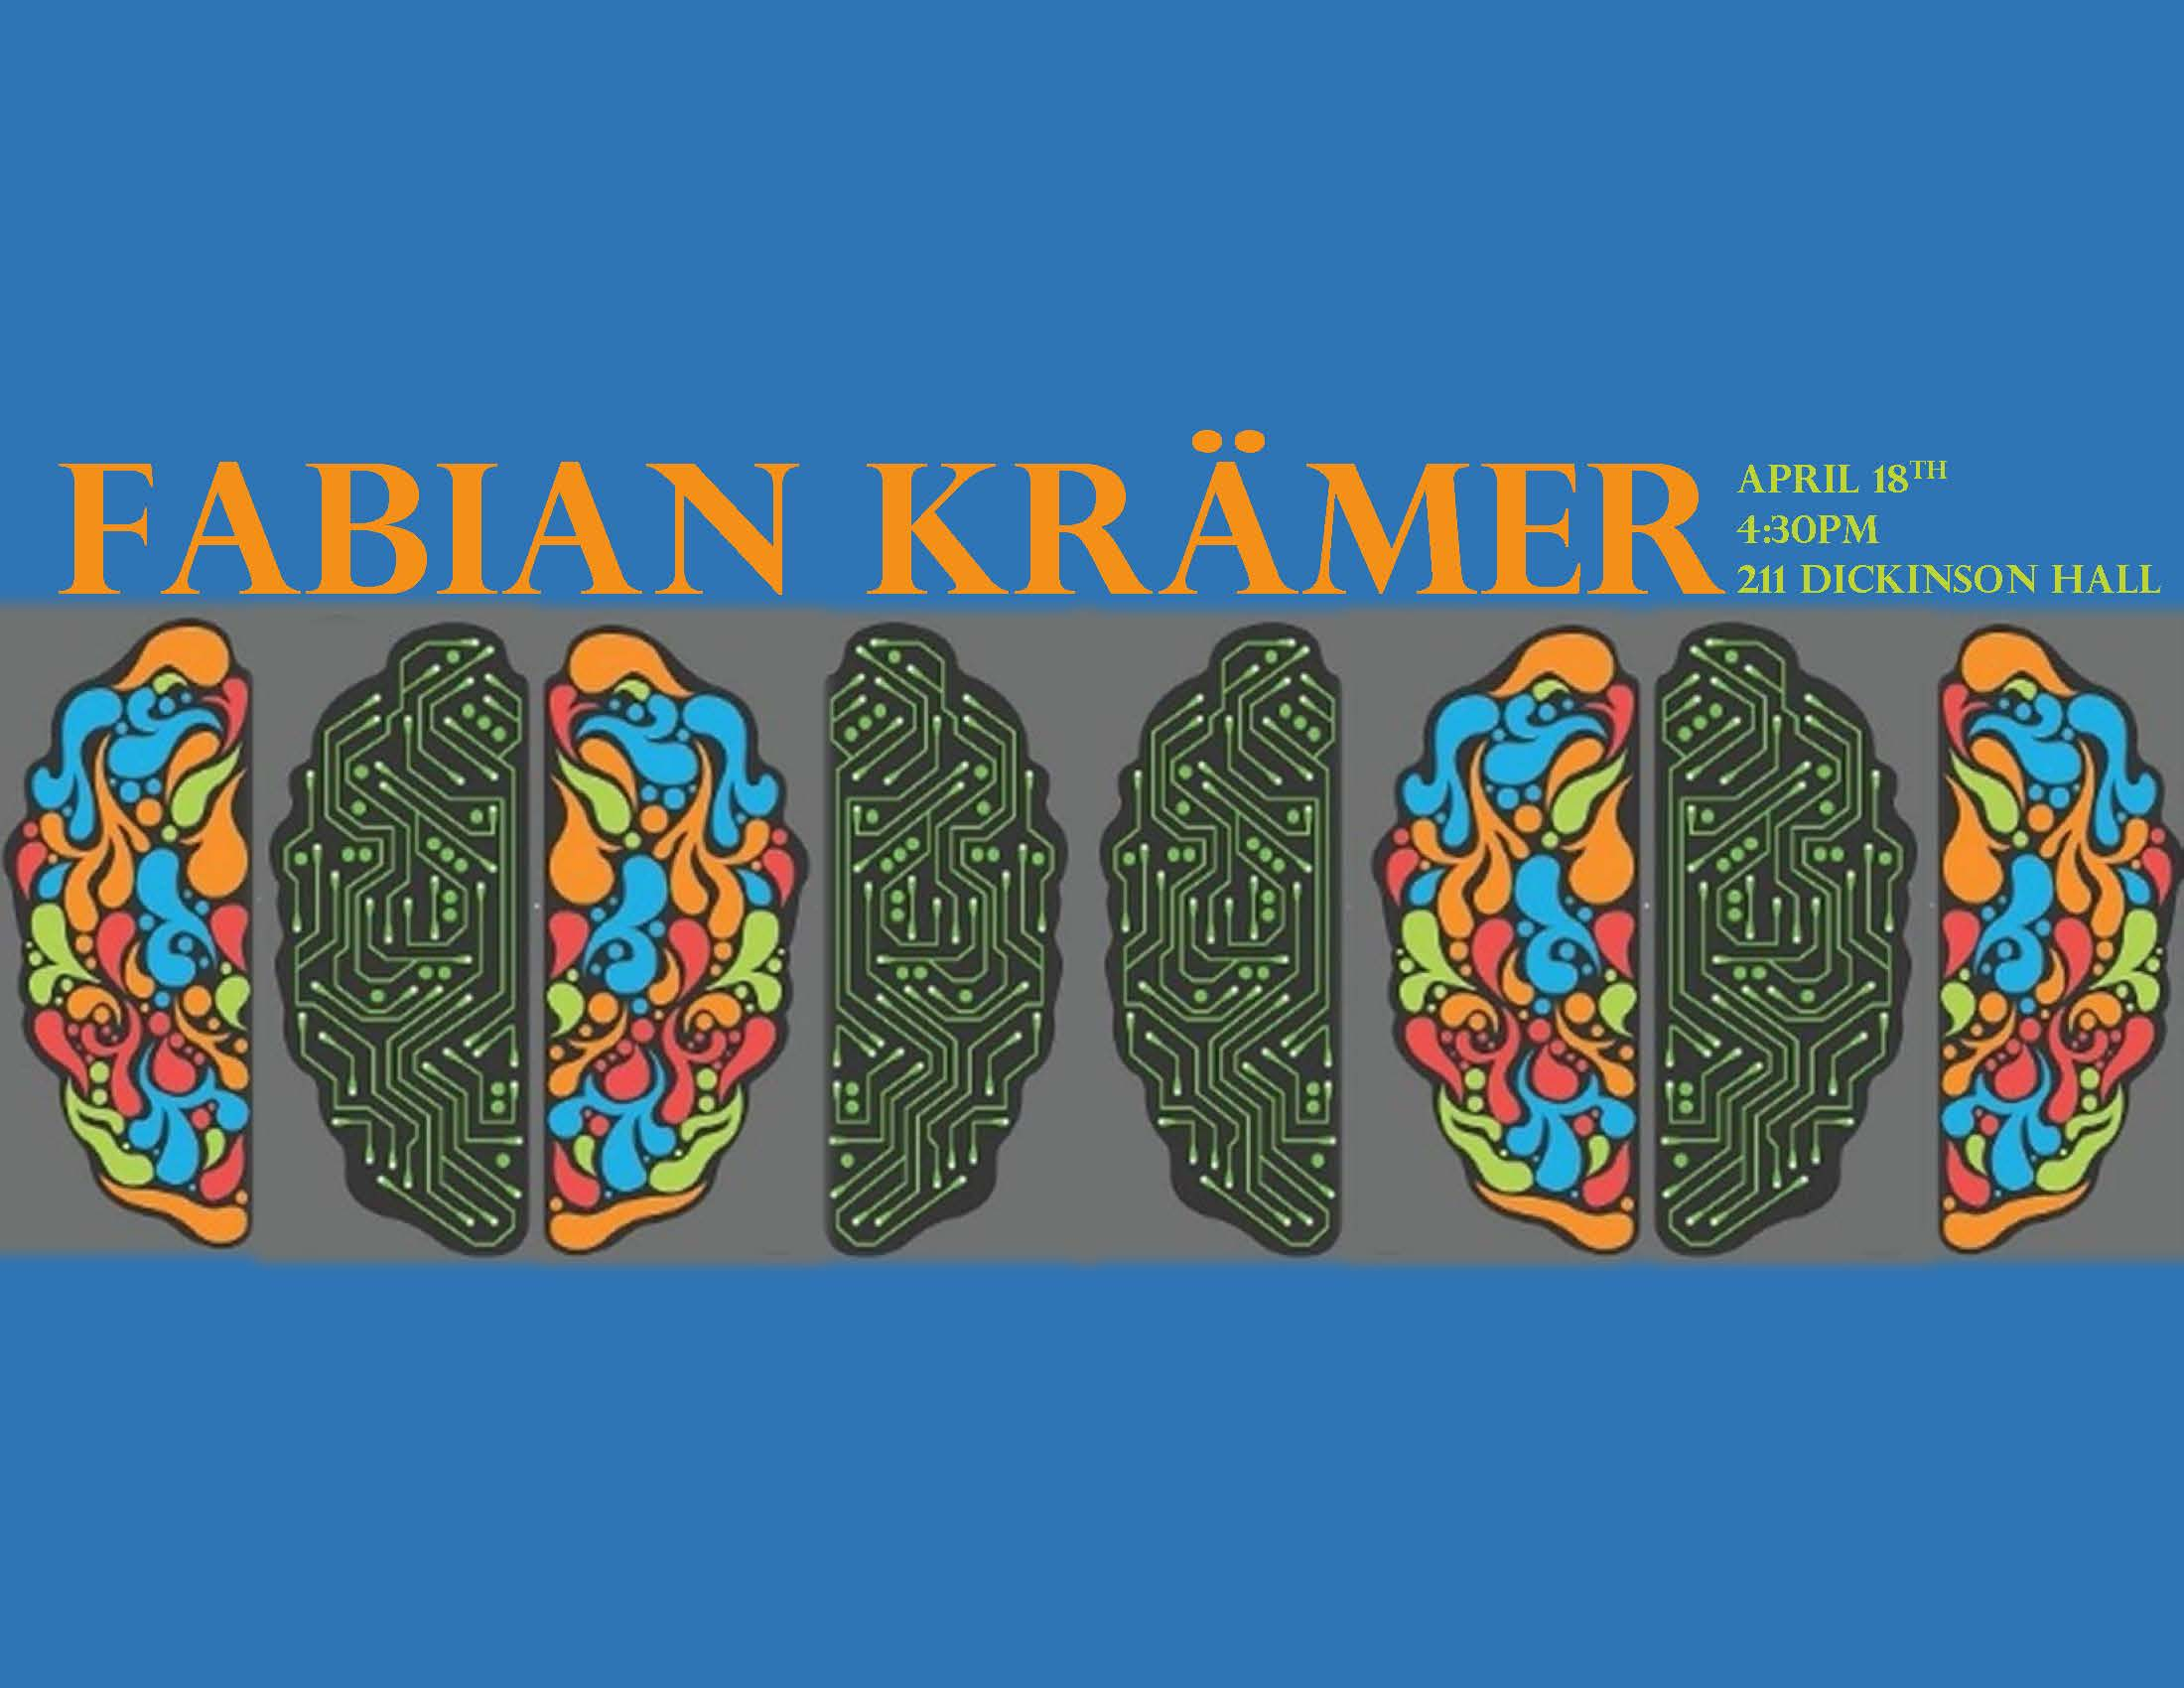 Fabian Kramer, HOS Colloquium: April 18th, 4:30pm, 211 Dickinson Hall